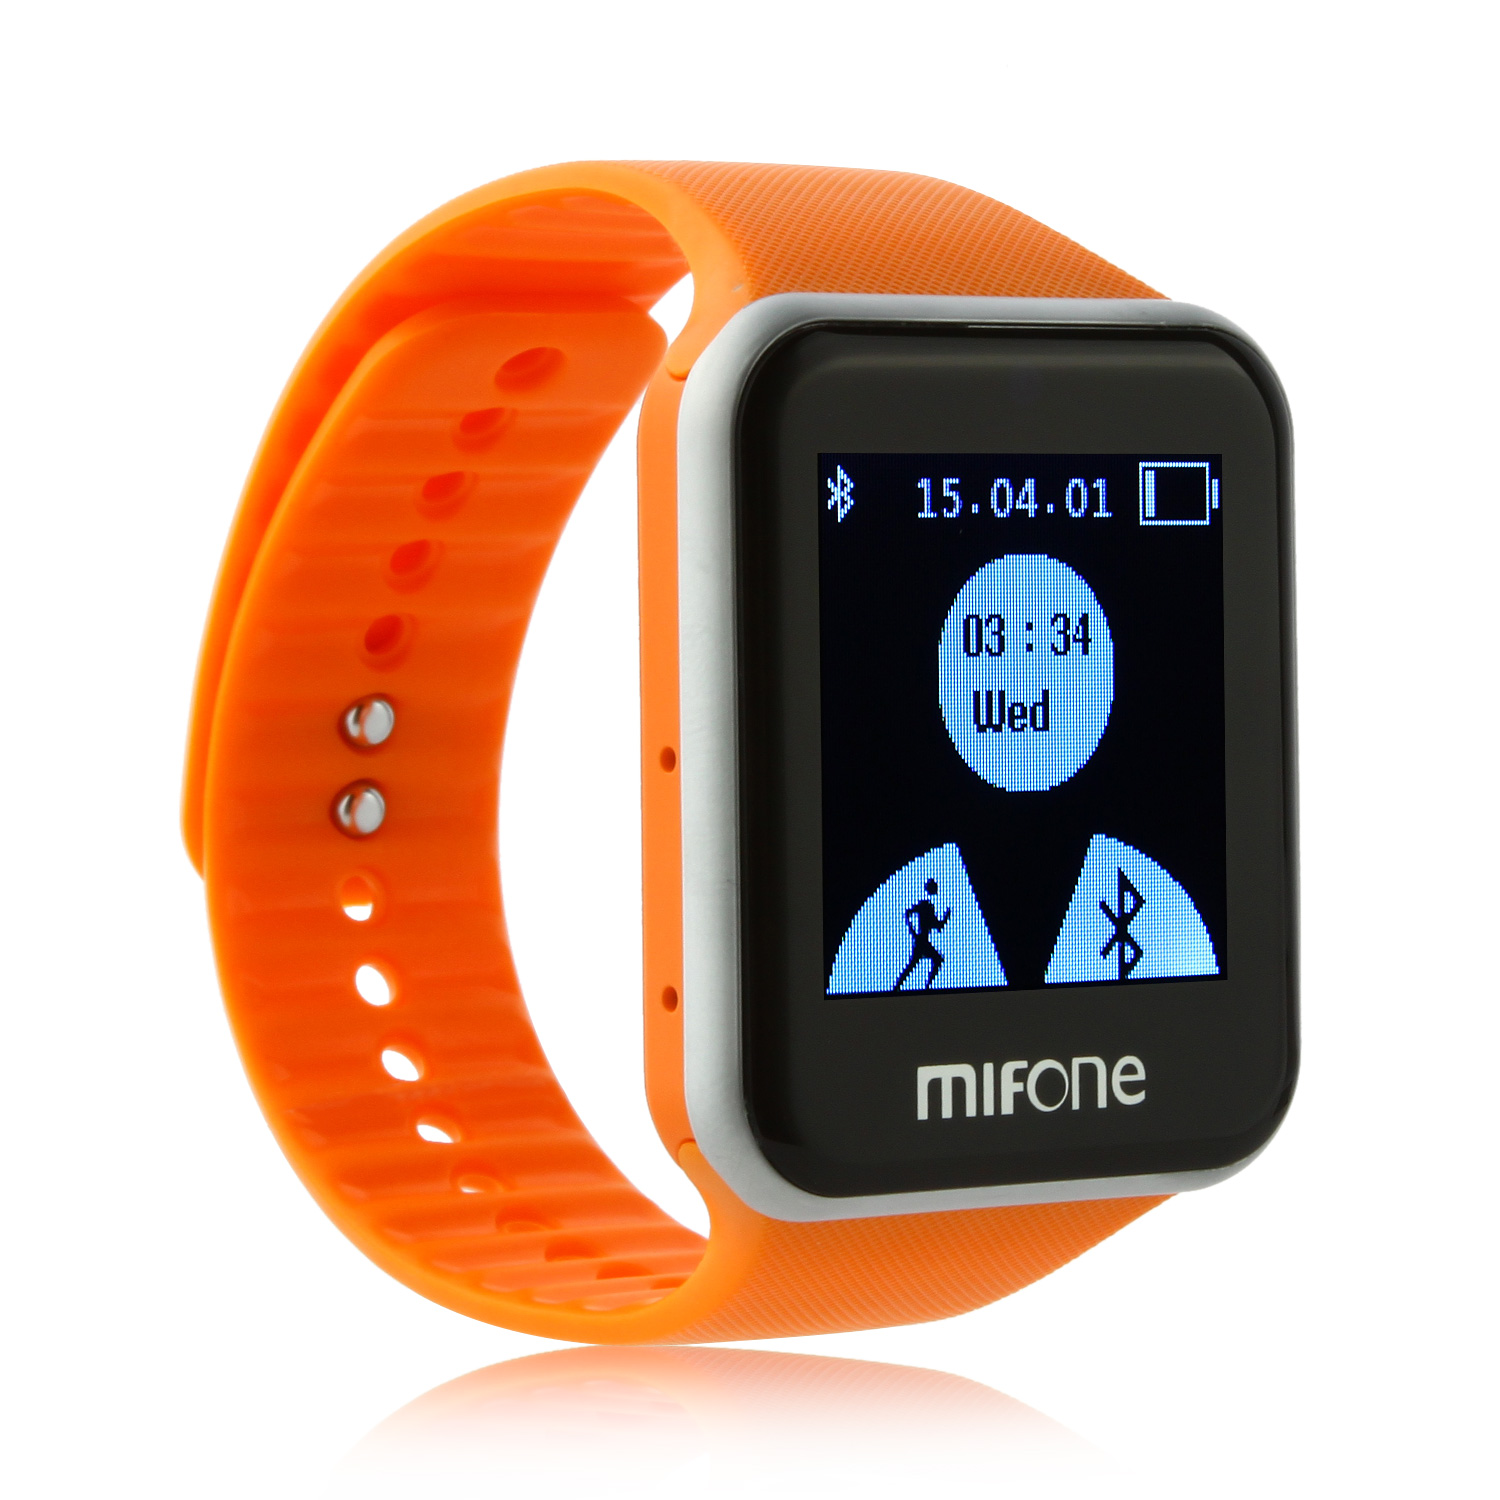 "MIFone W15 2.5D Sapphire Glass Smart Bluetooth Watch 1.5""Screen TPSiV Safe Strap Orange"